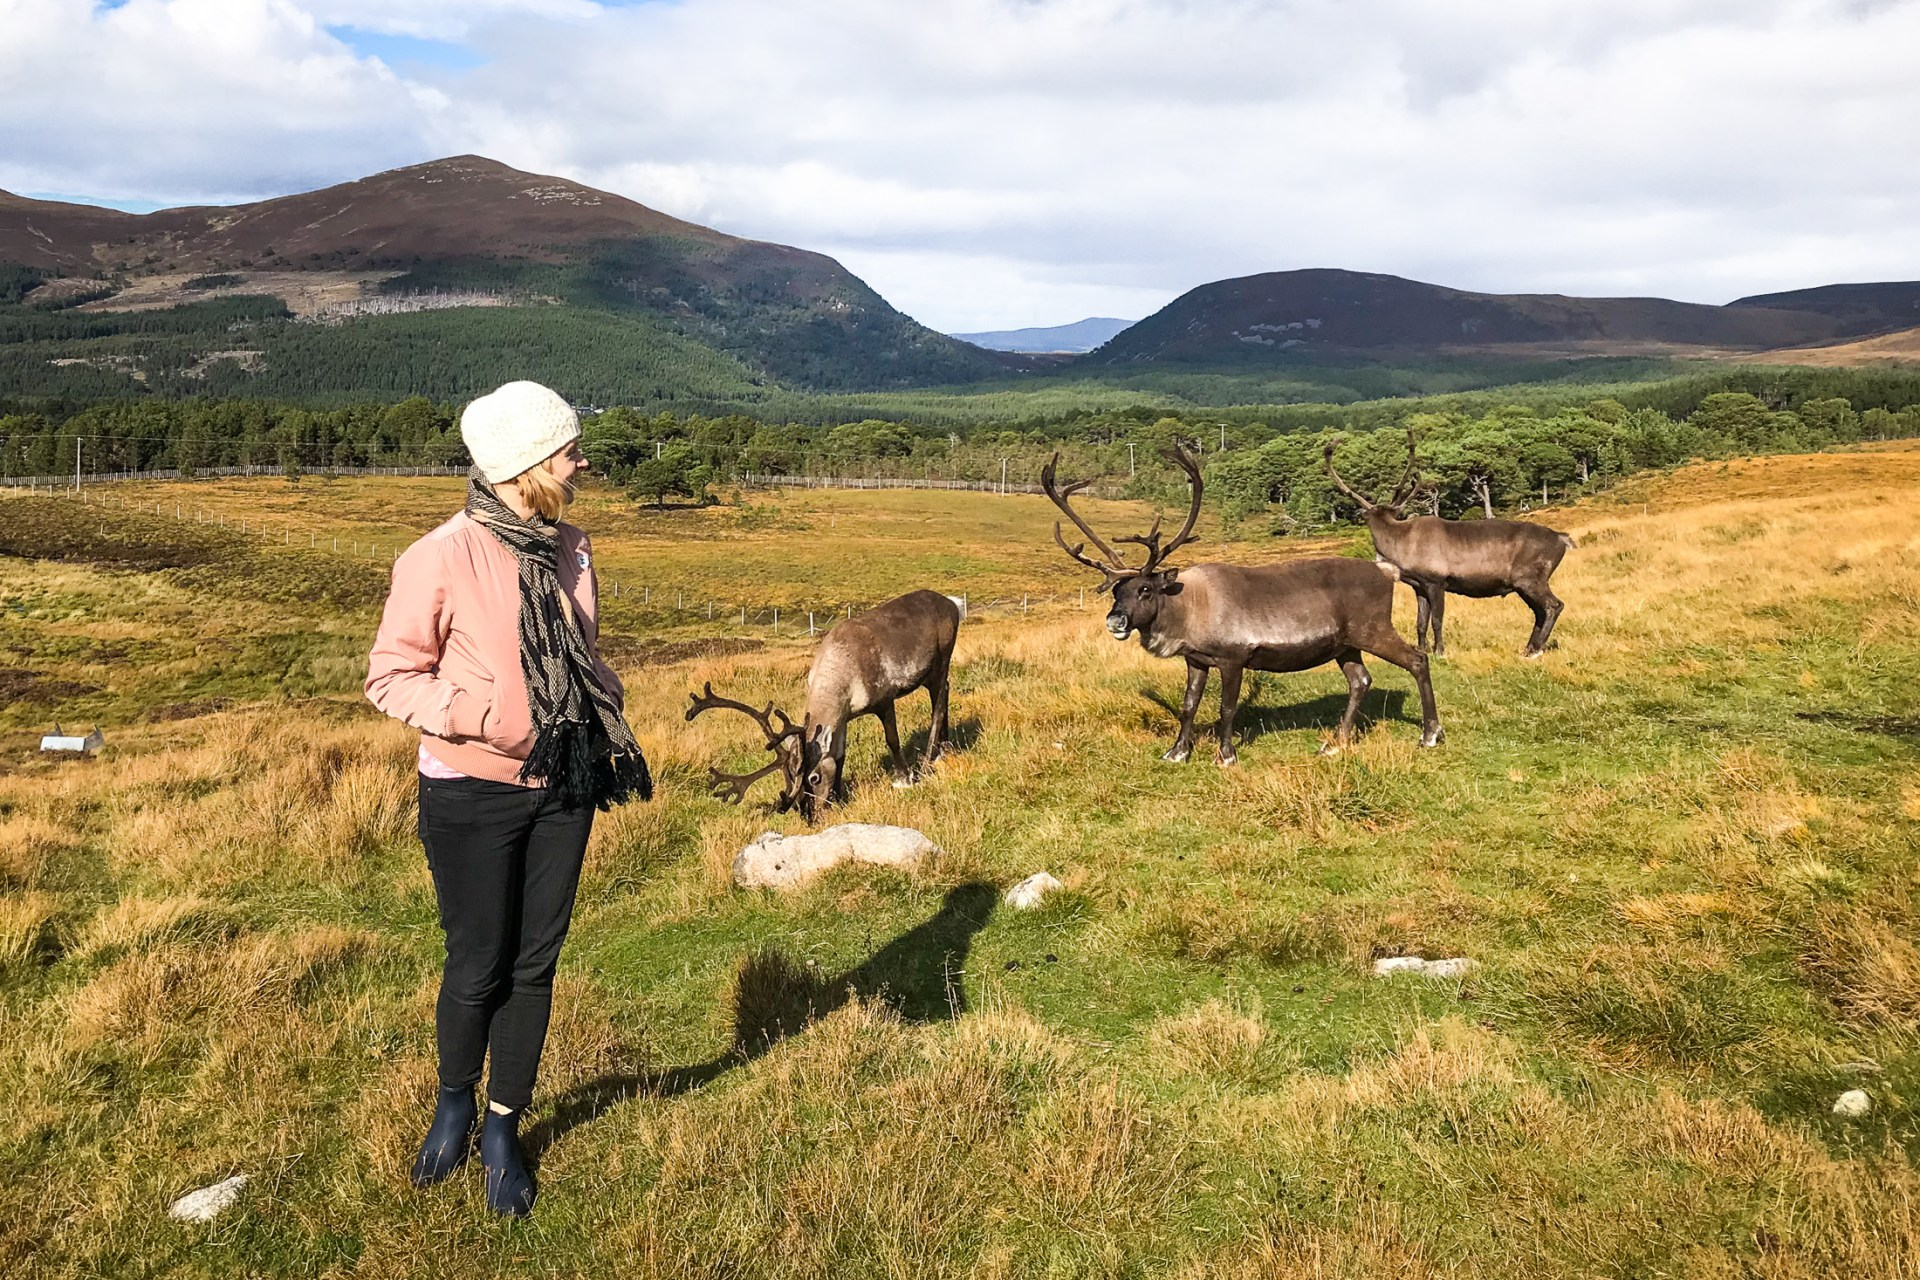 My best ever wildlife adventure: Making friends with reindeer in Scotland